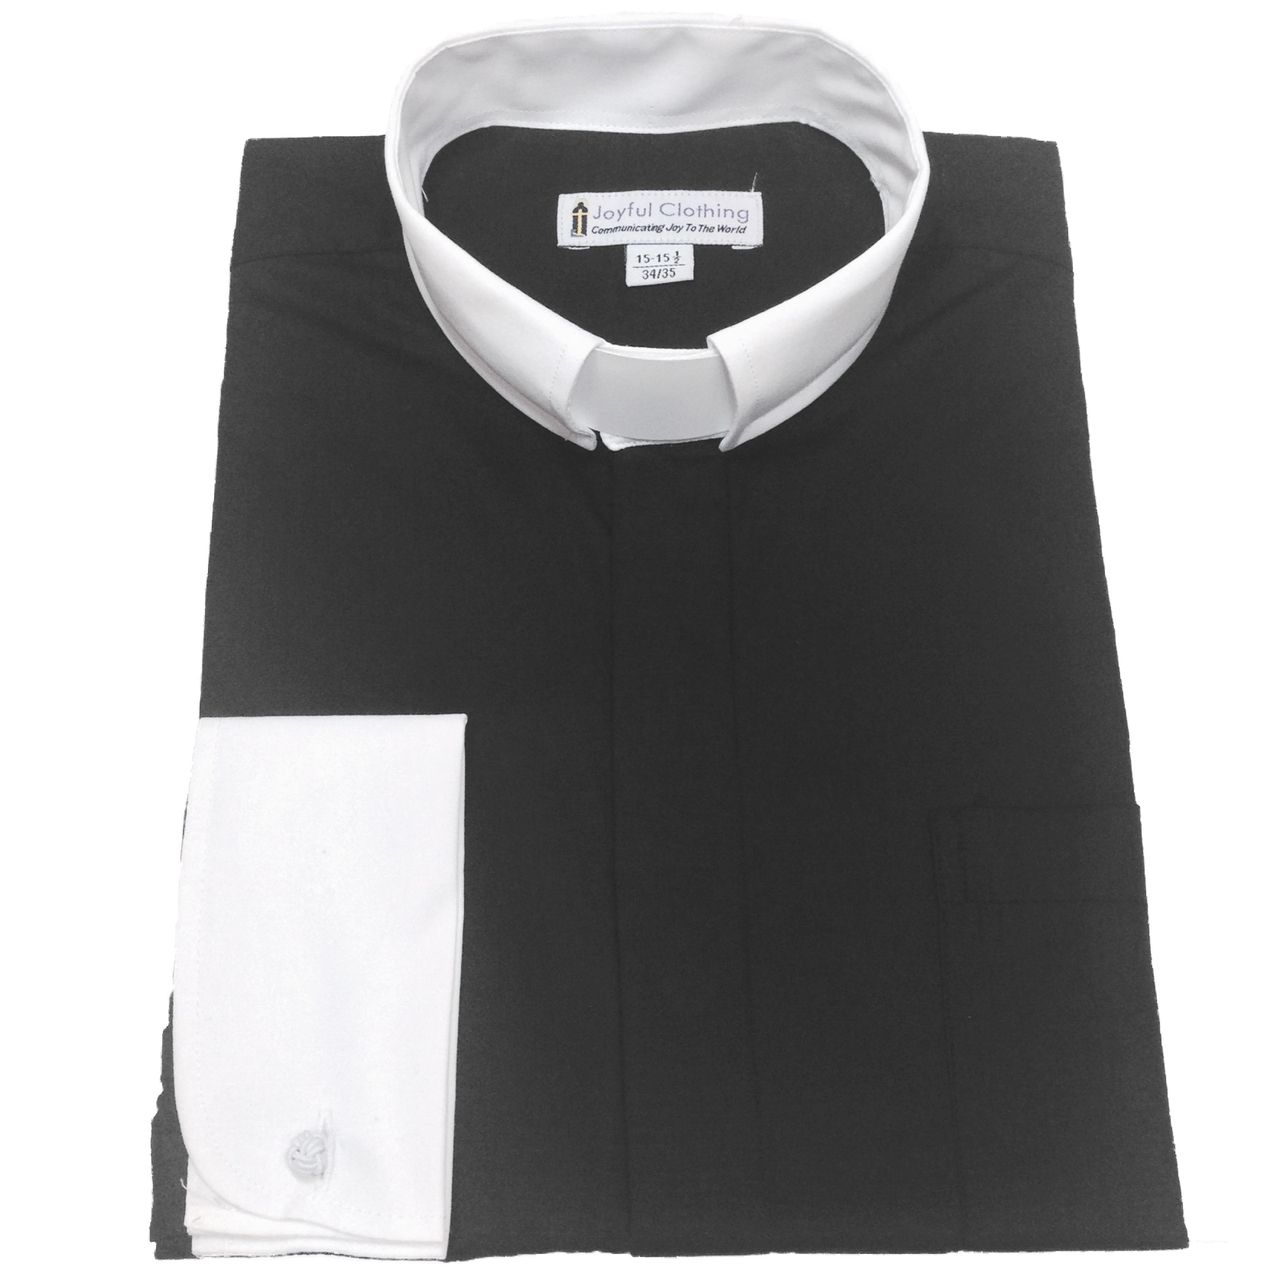 138. Men's Contrast Tab-Collar Clergy Shirt - Black/White Collar